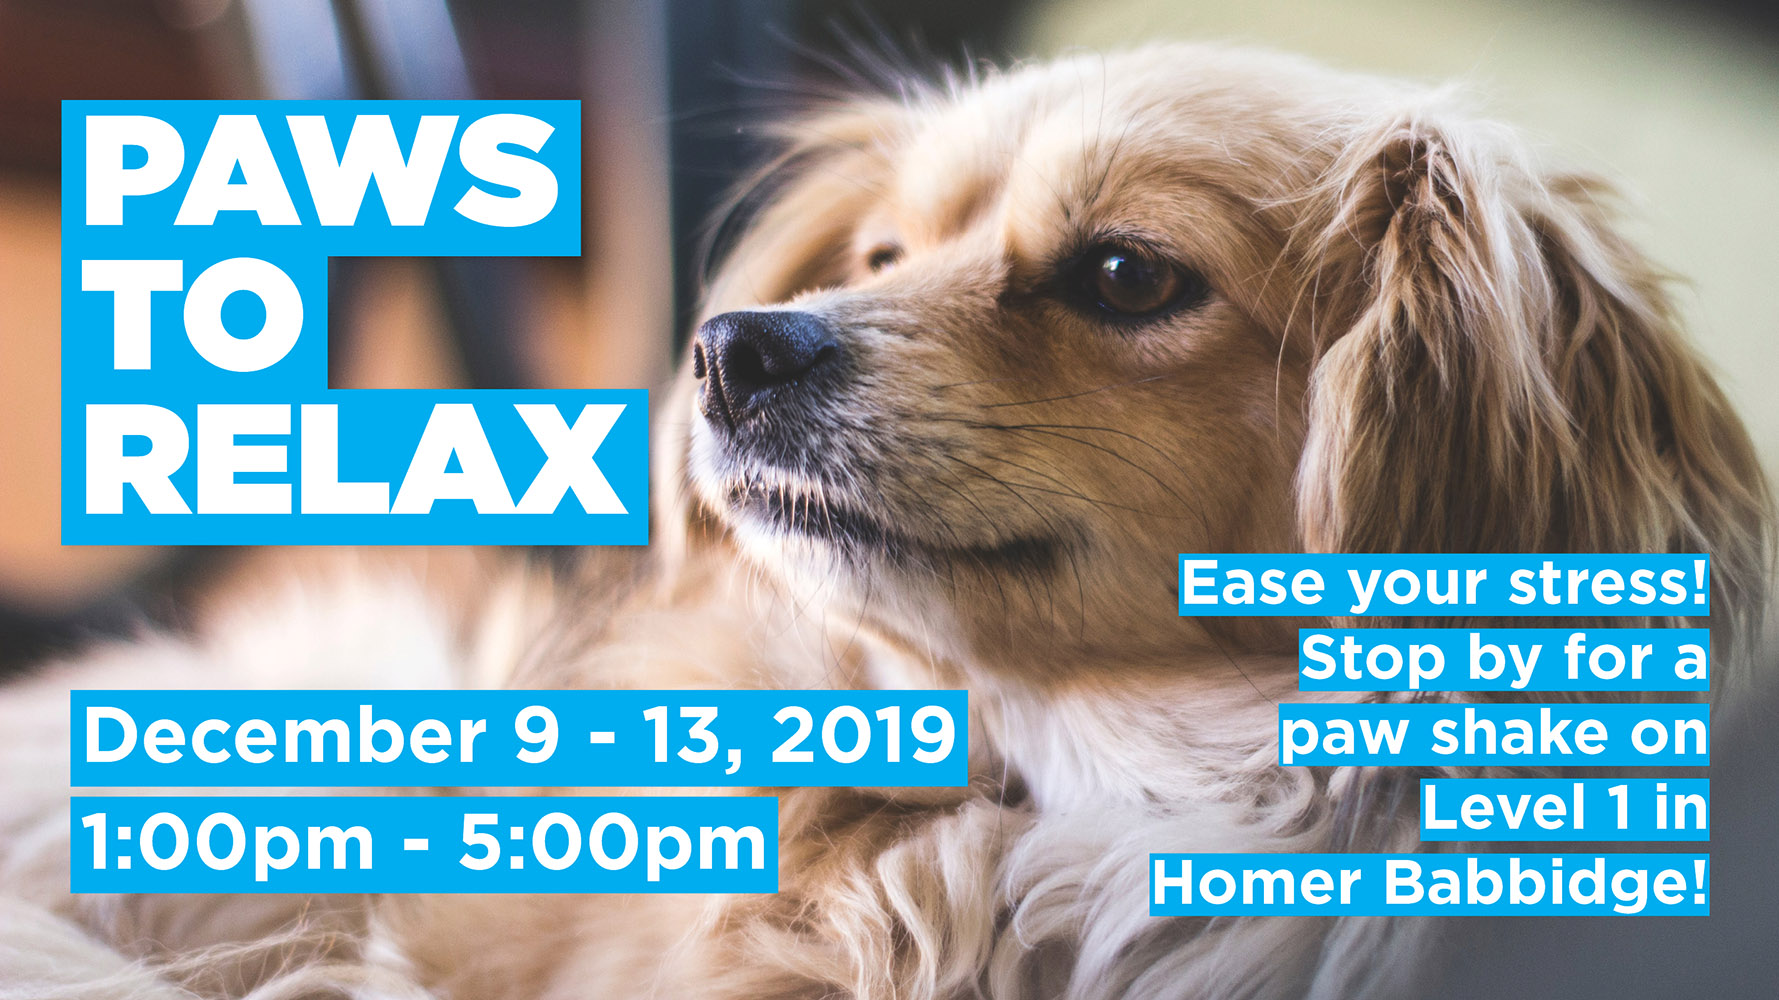 Paws To Relax December 9-13, 2019 1:00-5:00pm Ease your stress! Stop by for a paw shake on Level 1 in Homer Babbidge!